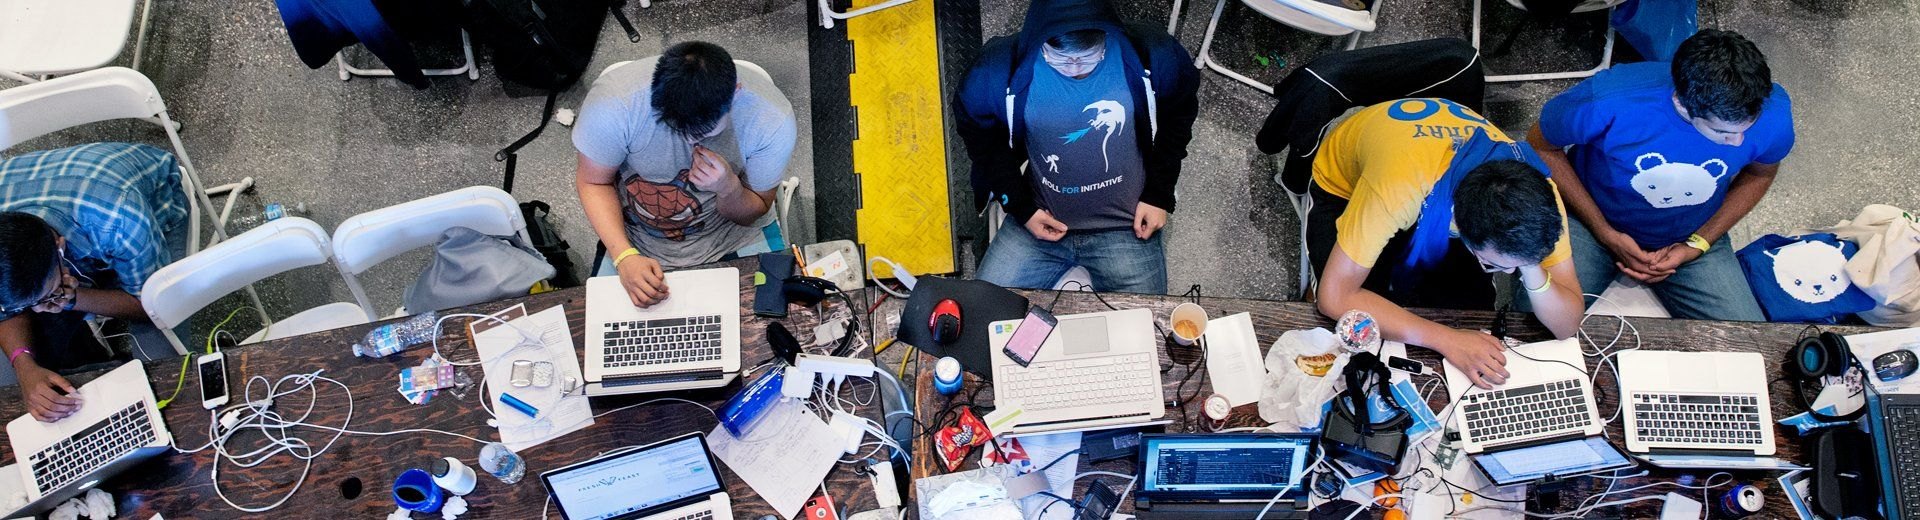 bird's-eye view of a group of people working on their laptops.